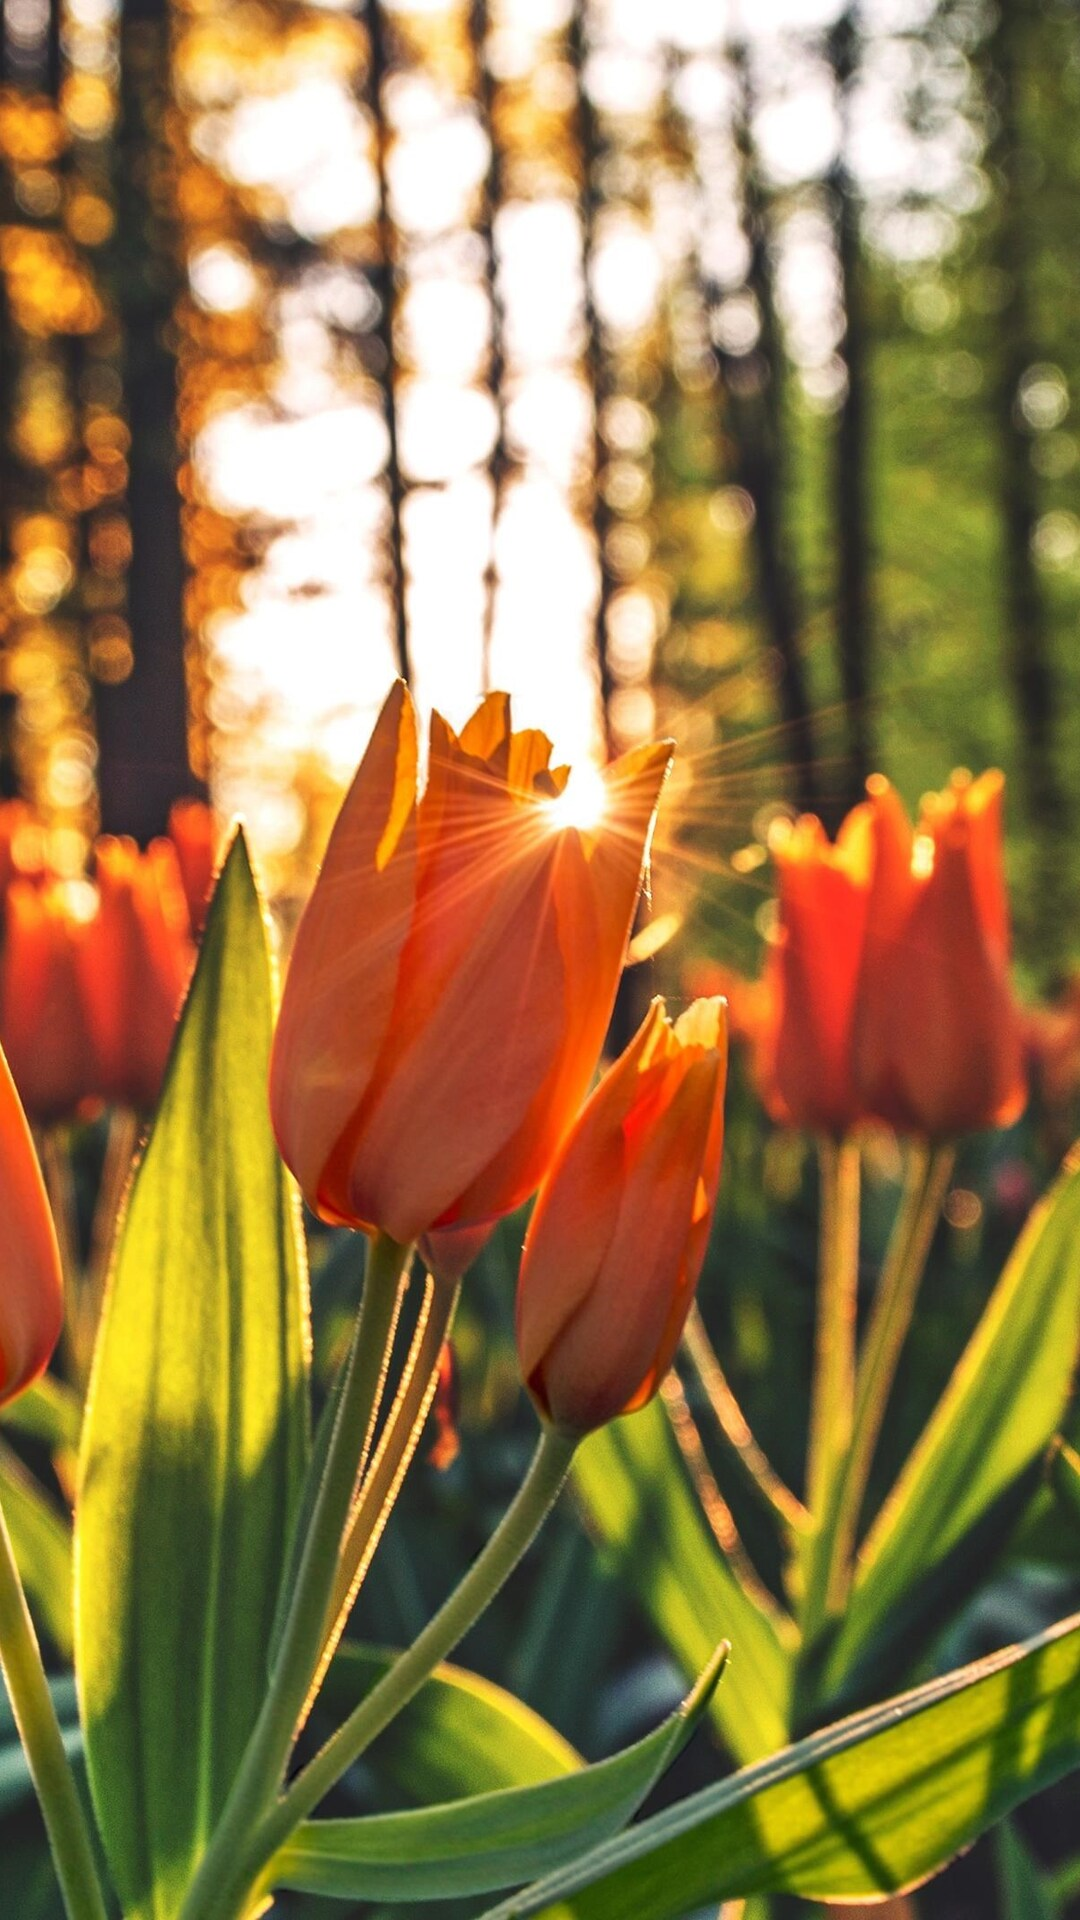 orange-tulips-hd.jpg